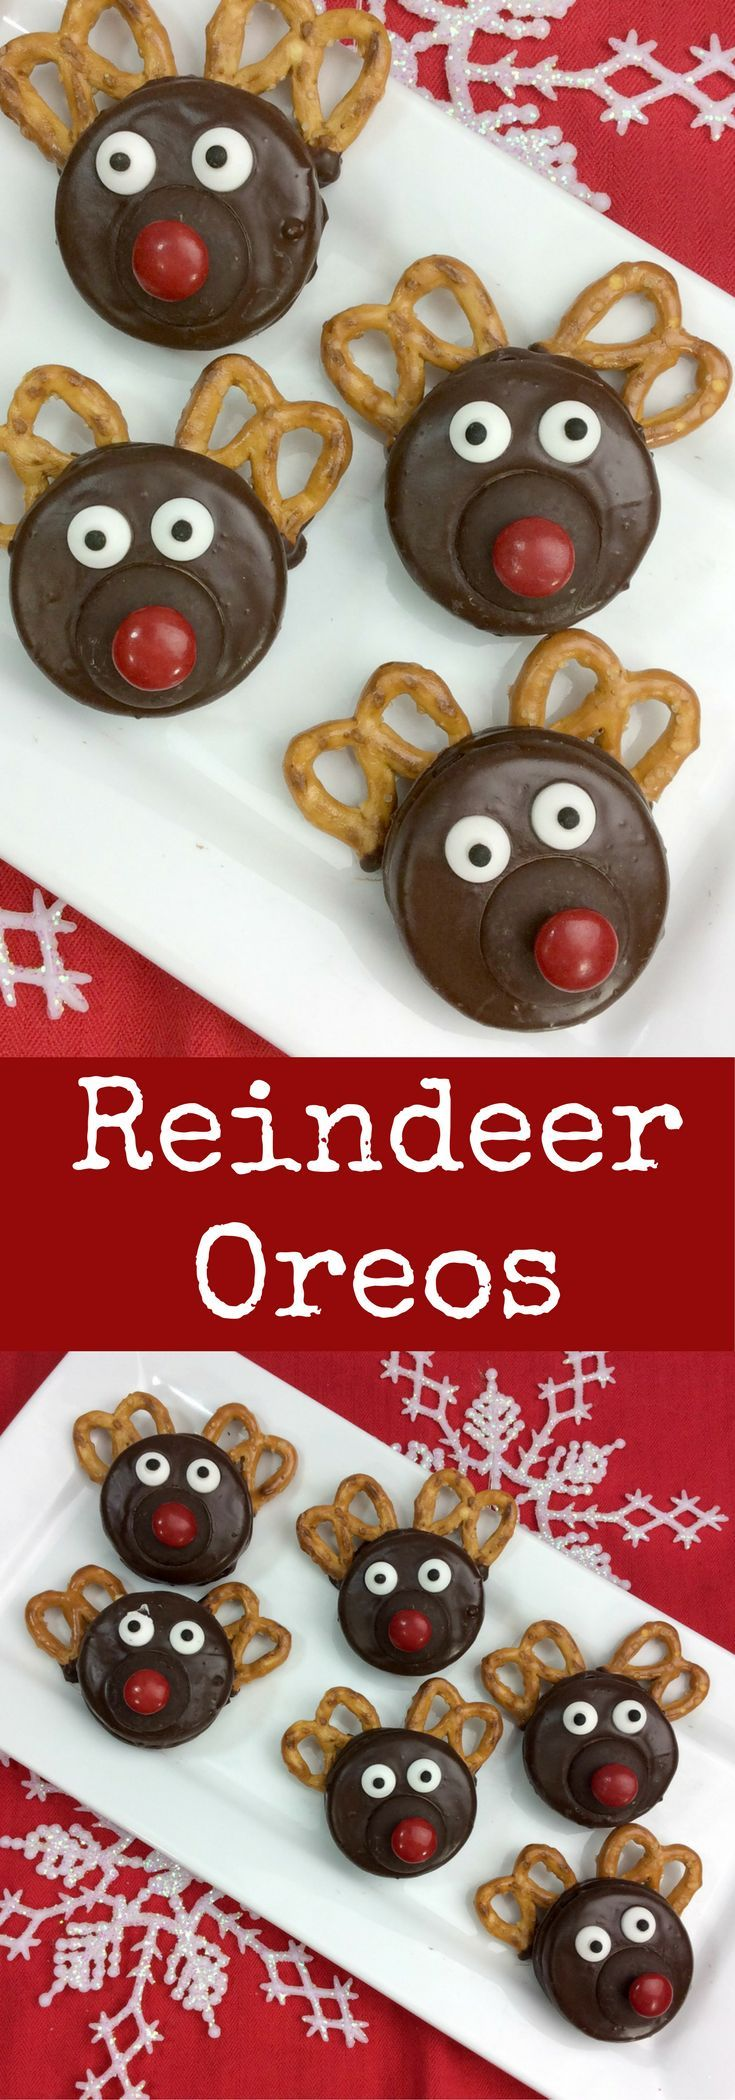 Easy Chocolate Covered Oreo Rudolph the Red Nosed Reindeer Recipe #holidayrecipes #oreorecipe #EasyRecipes #recipesforkids